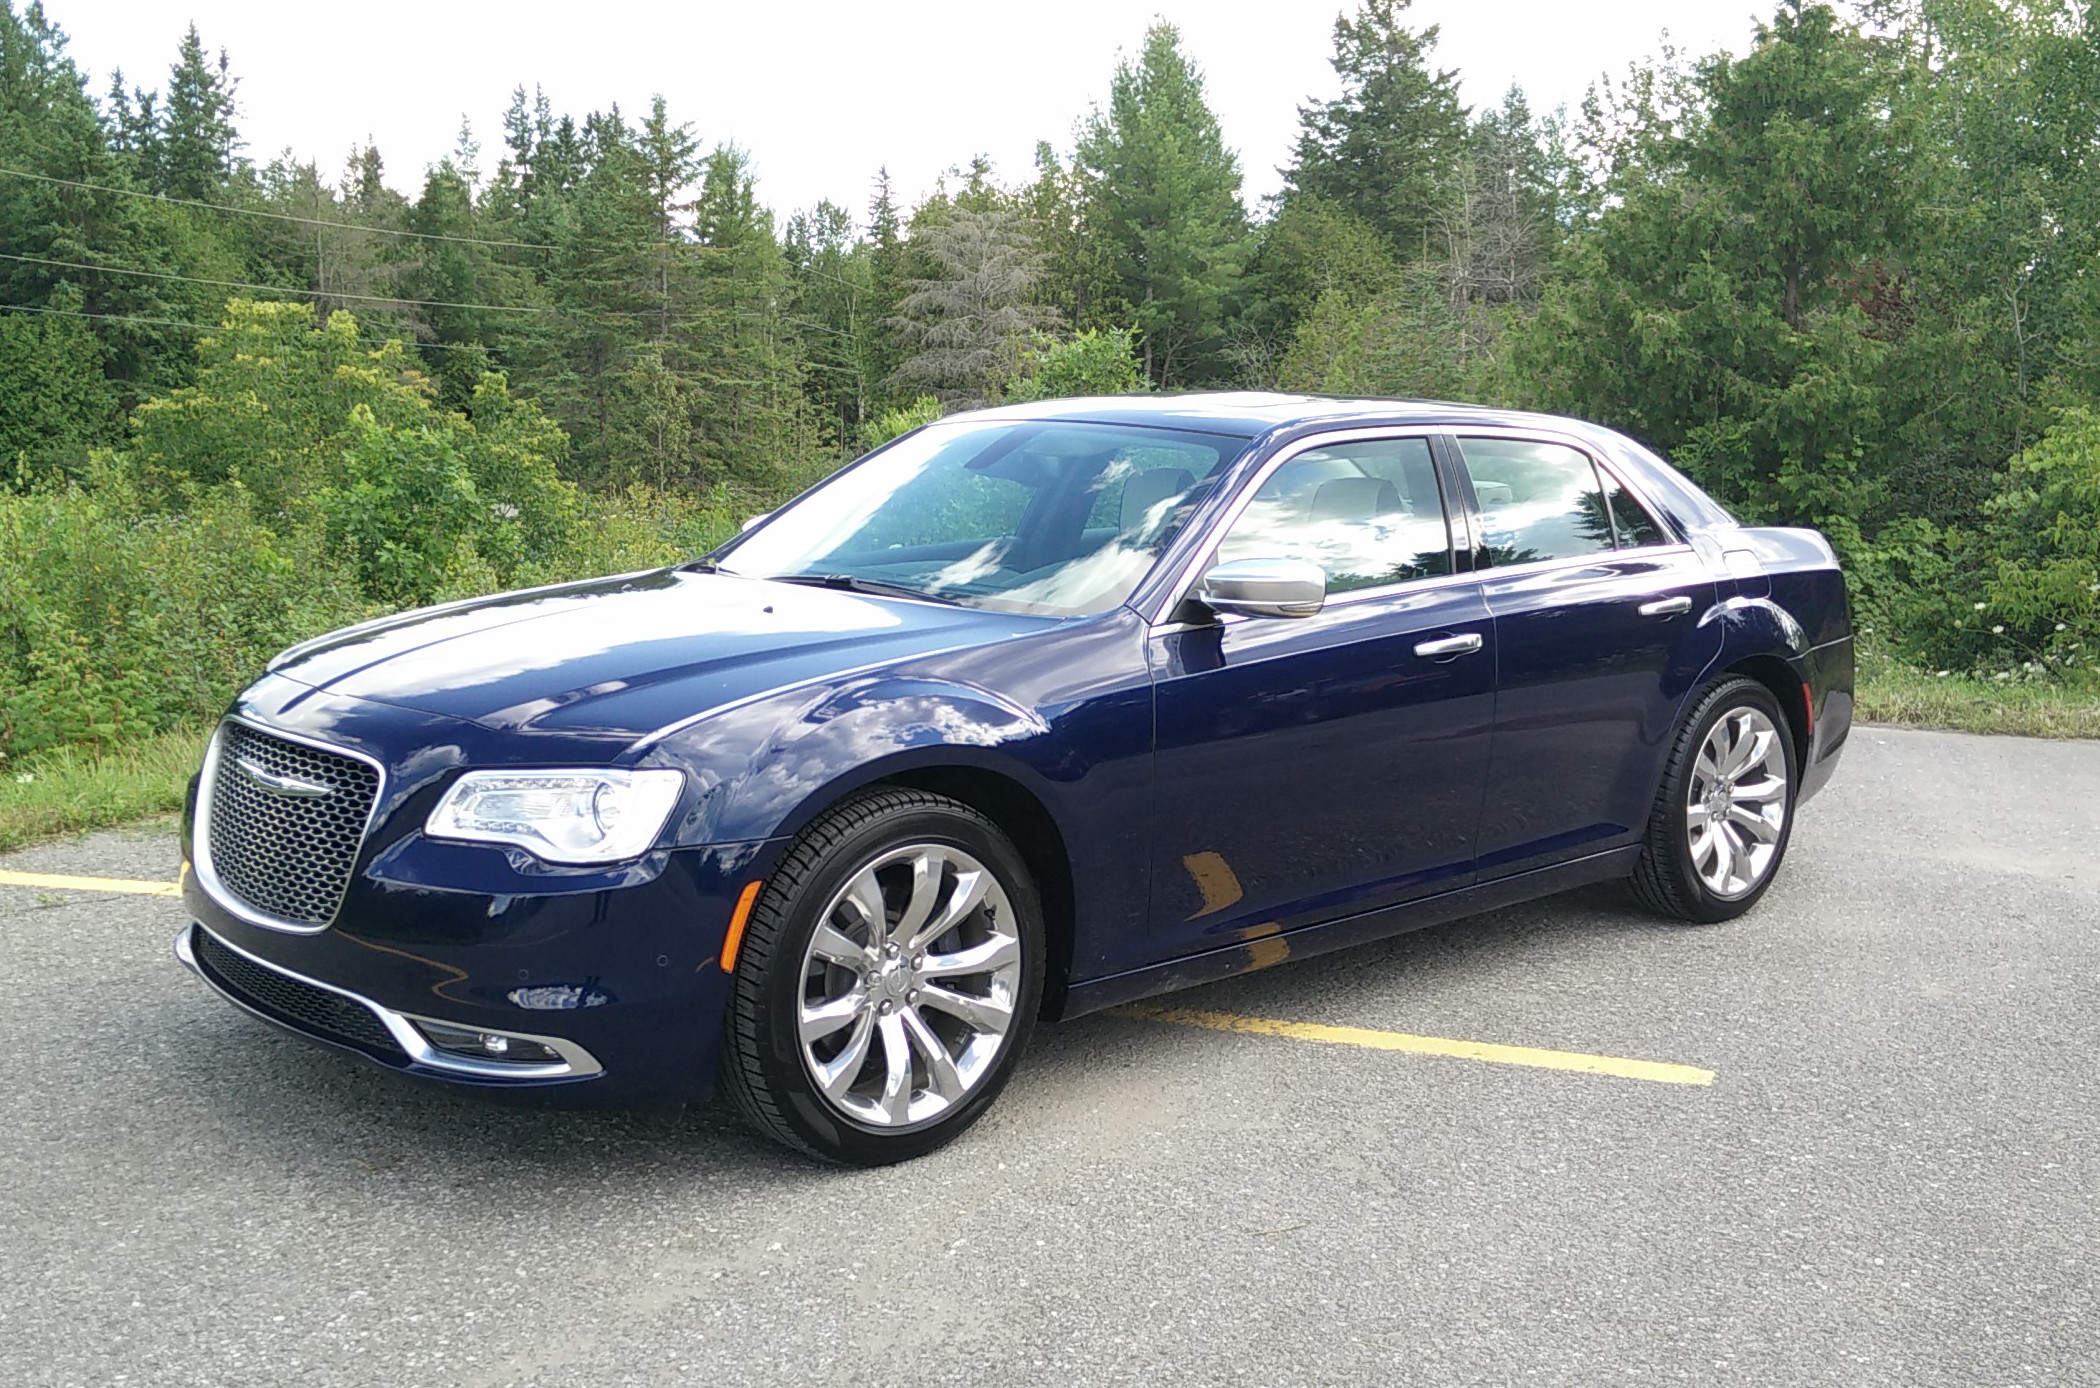 2015 chrysler 300c for Chrysler 300c